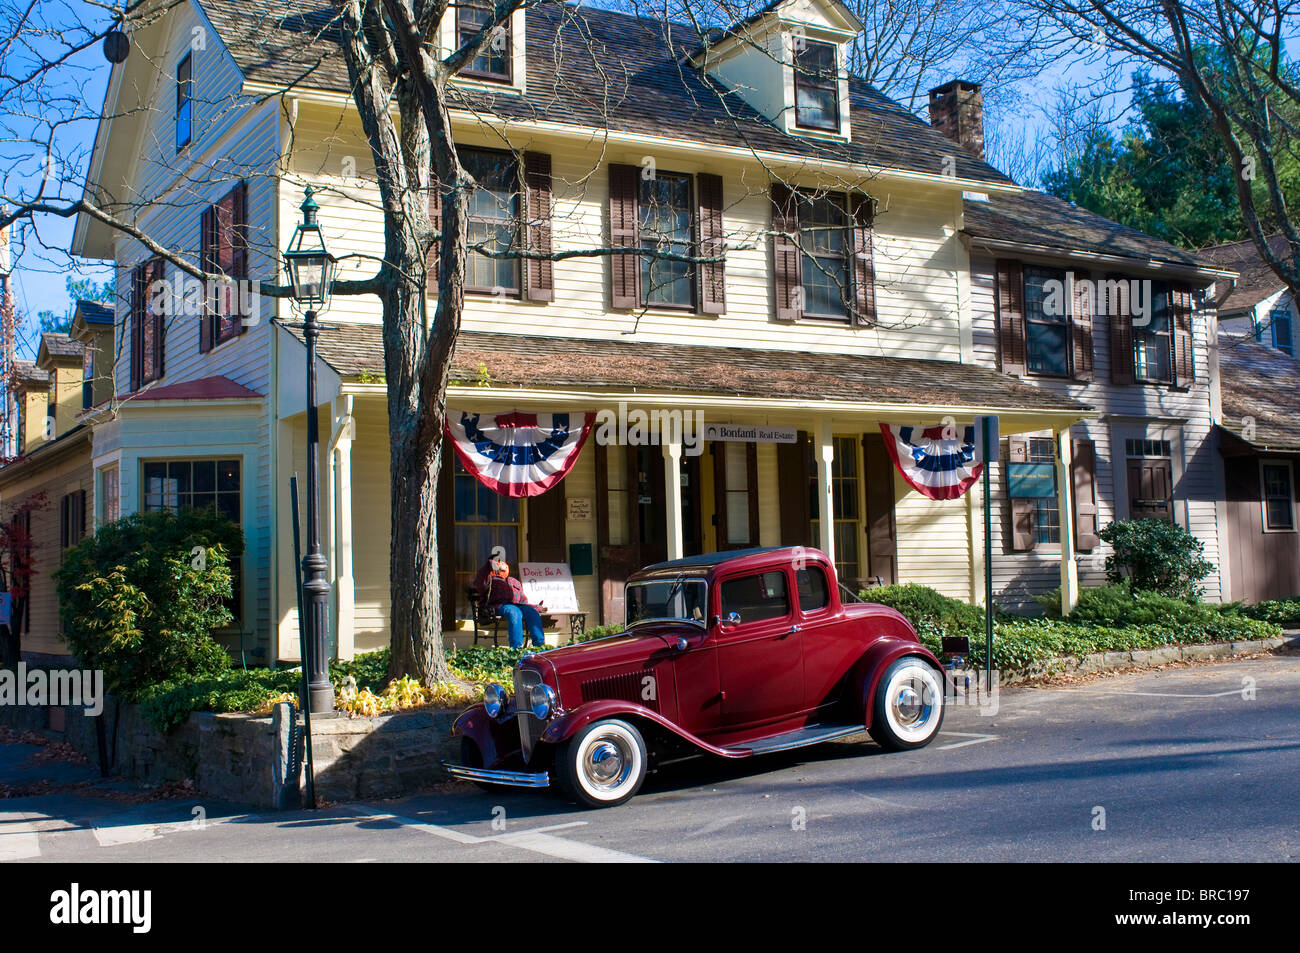 Oldtimer parking in front of an old house, Chester, Connecticut, New England, USA - Stock Image